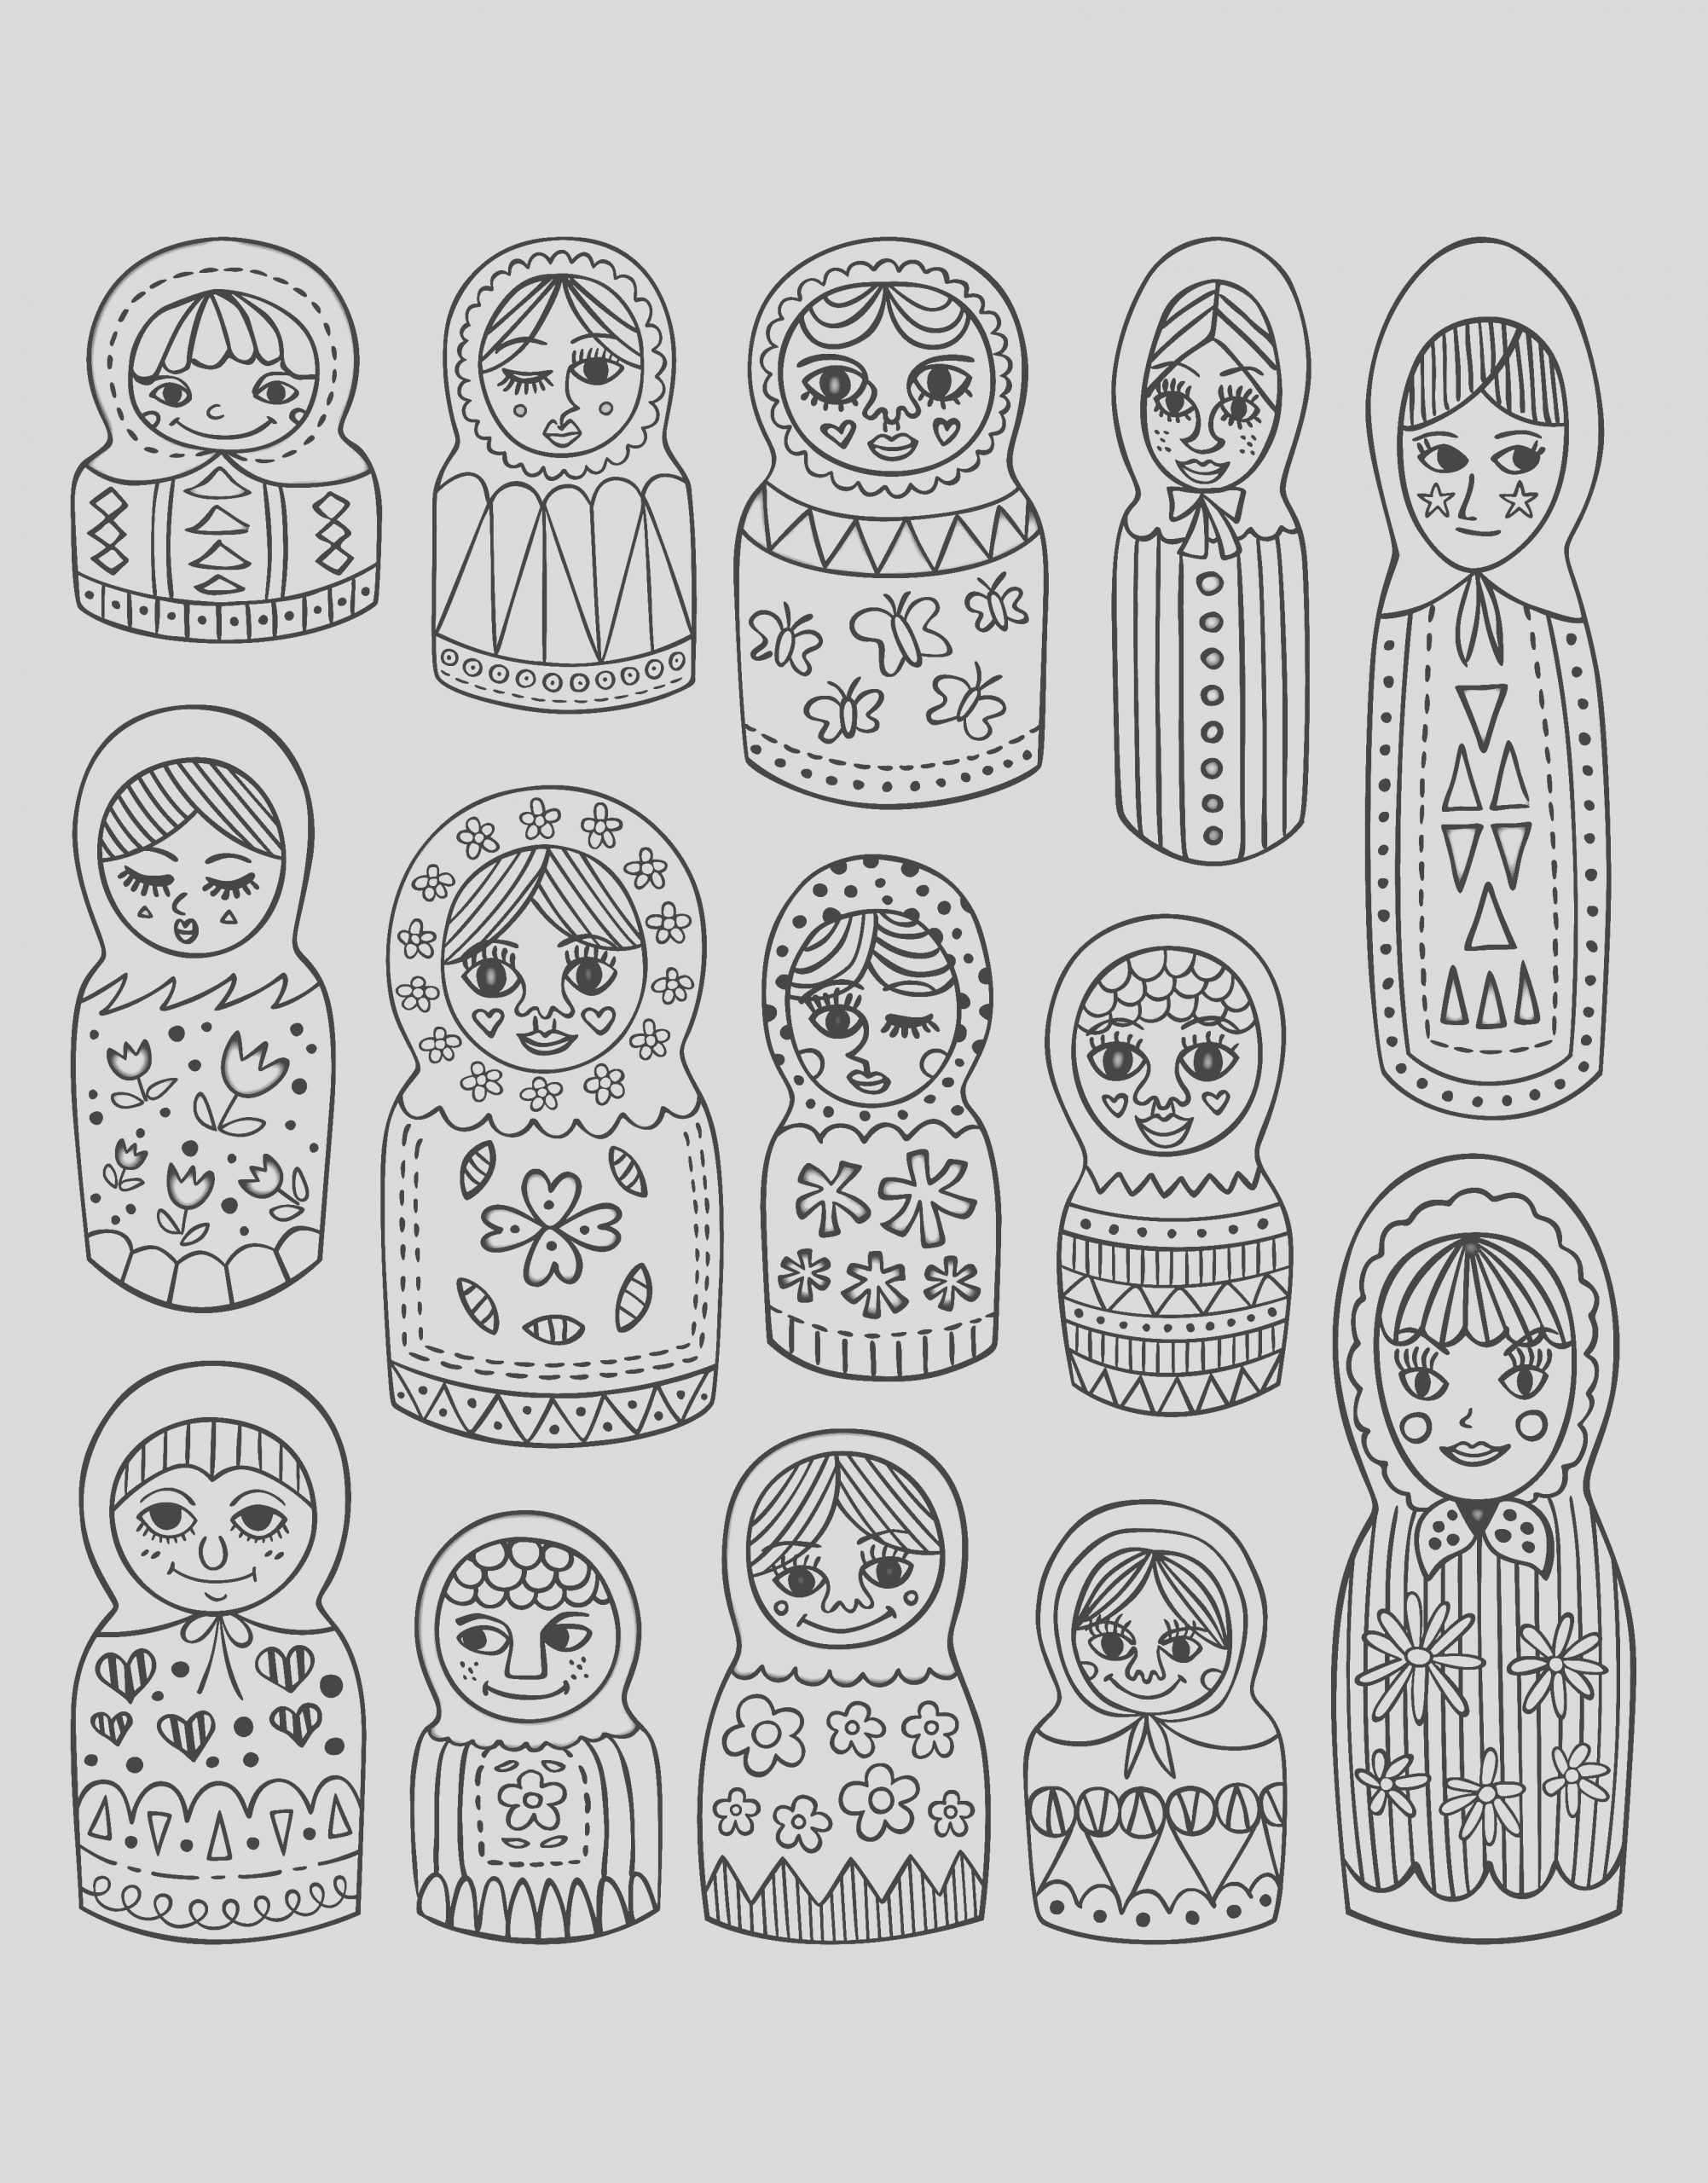 image=russian dolls coloring adult cute russian dolls 1